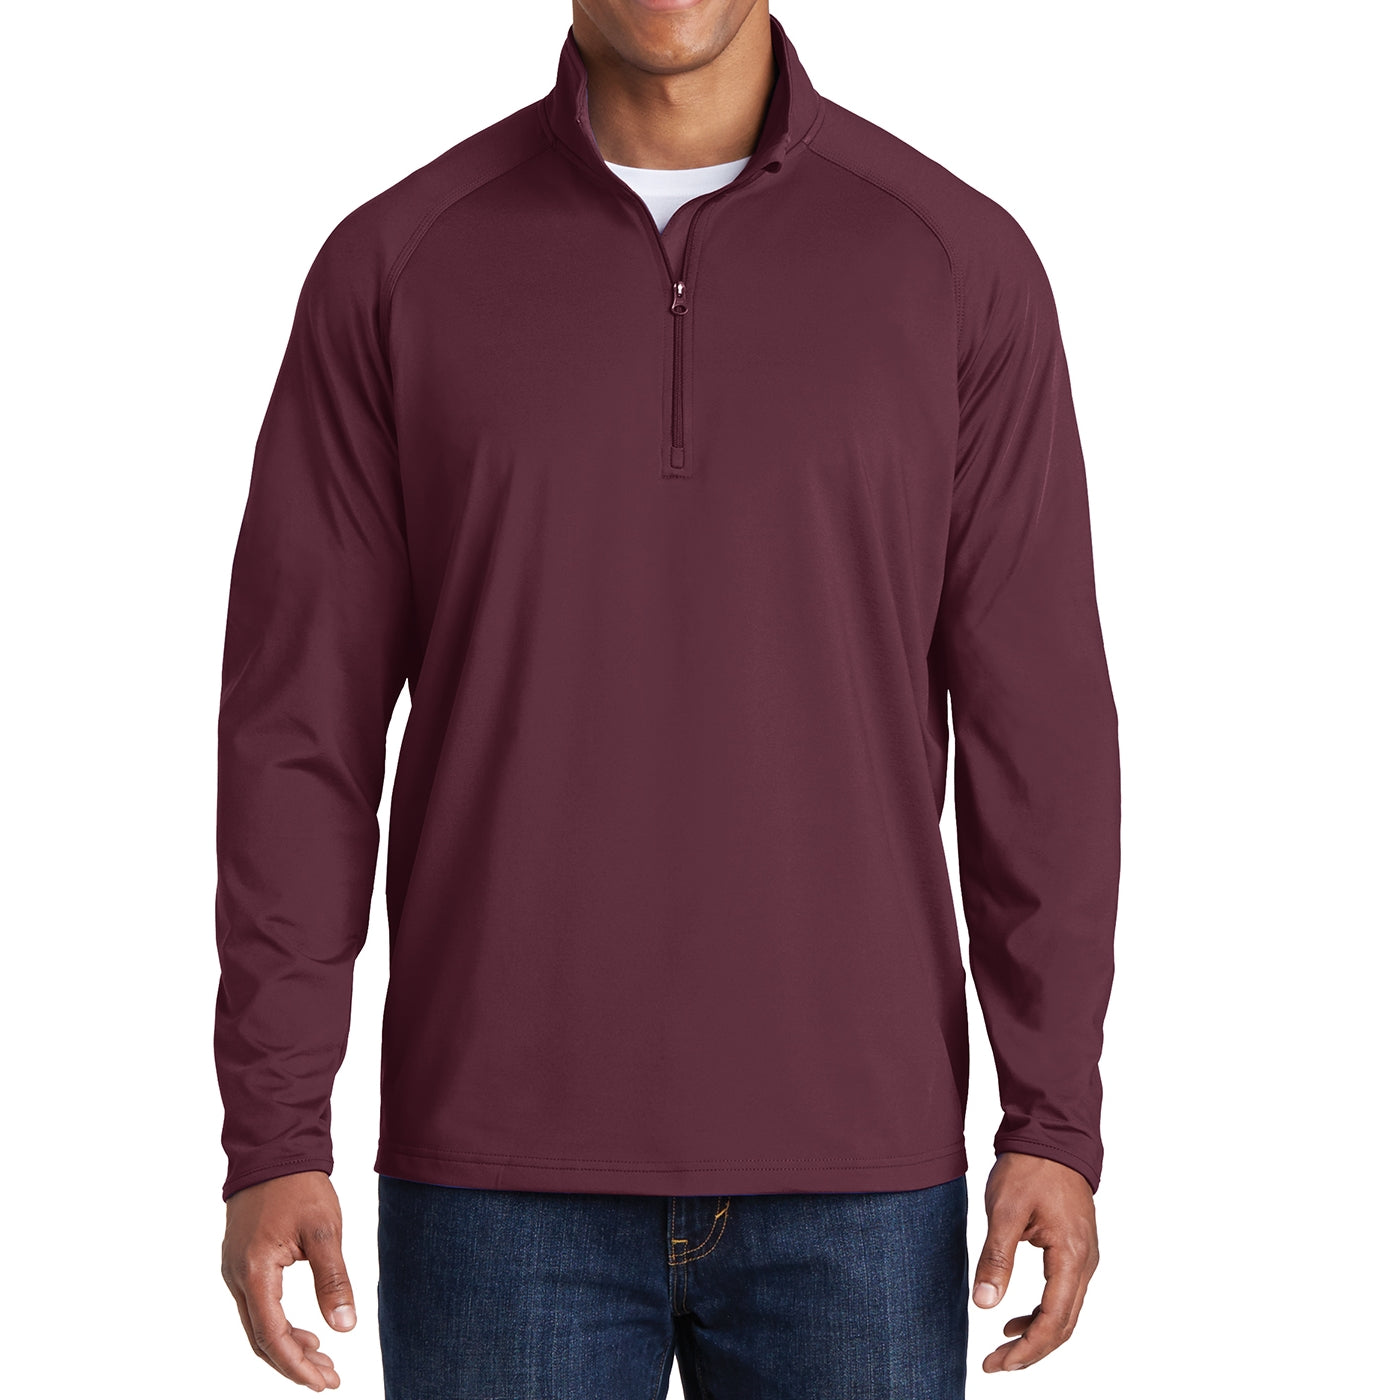 Men's Stretch 1/2 Zip Pullover - Maroon